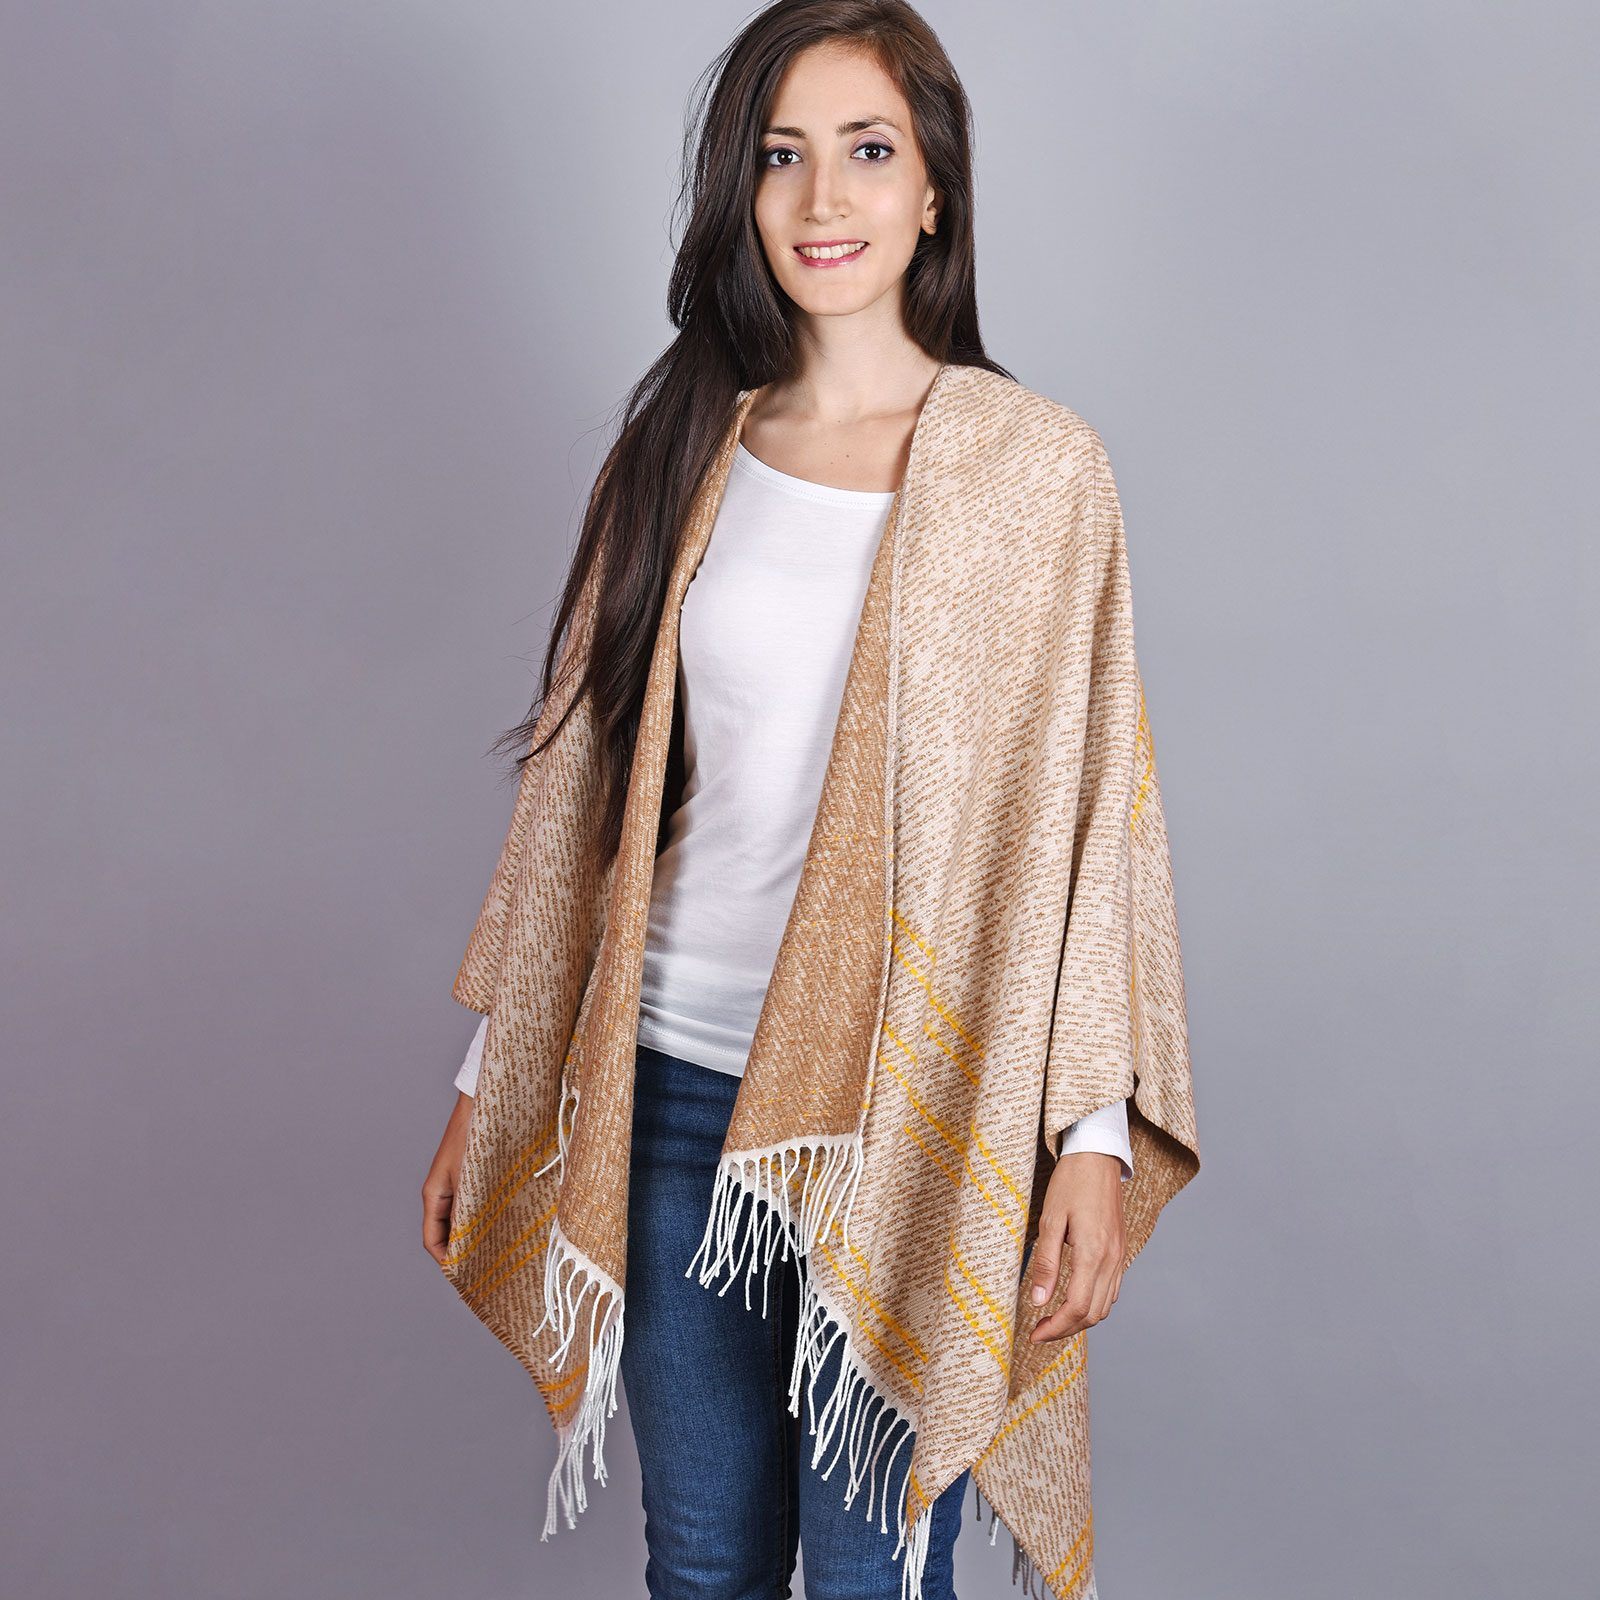 http://lookbook.allee-du-foulard.fr/wp-content/uploads/2019/01/AT-04508-VF16-1-poncho-hiver-franges-beige-1600x1600.jpg